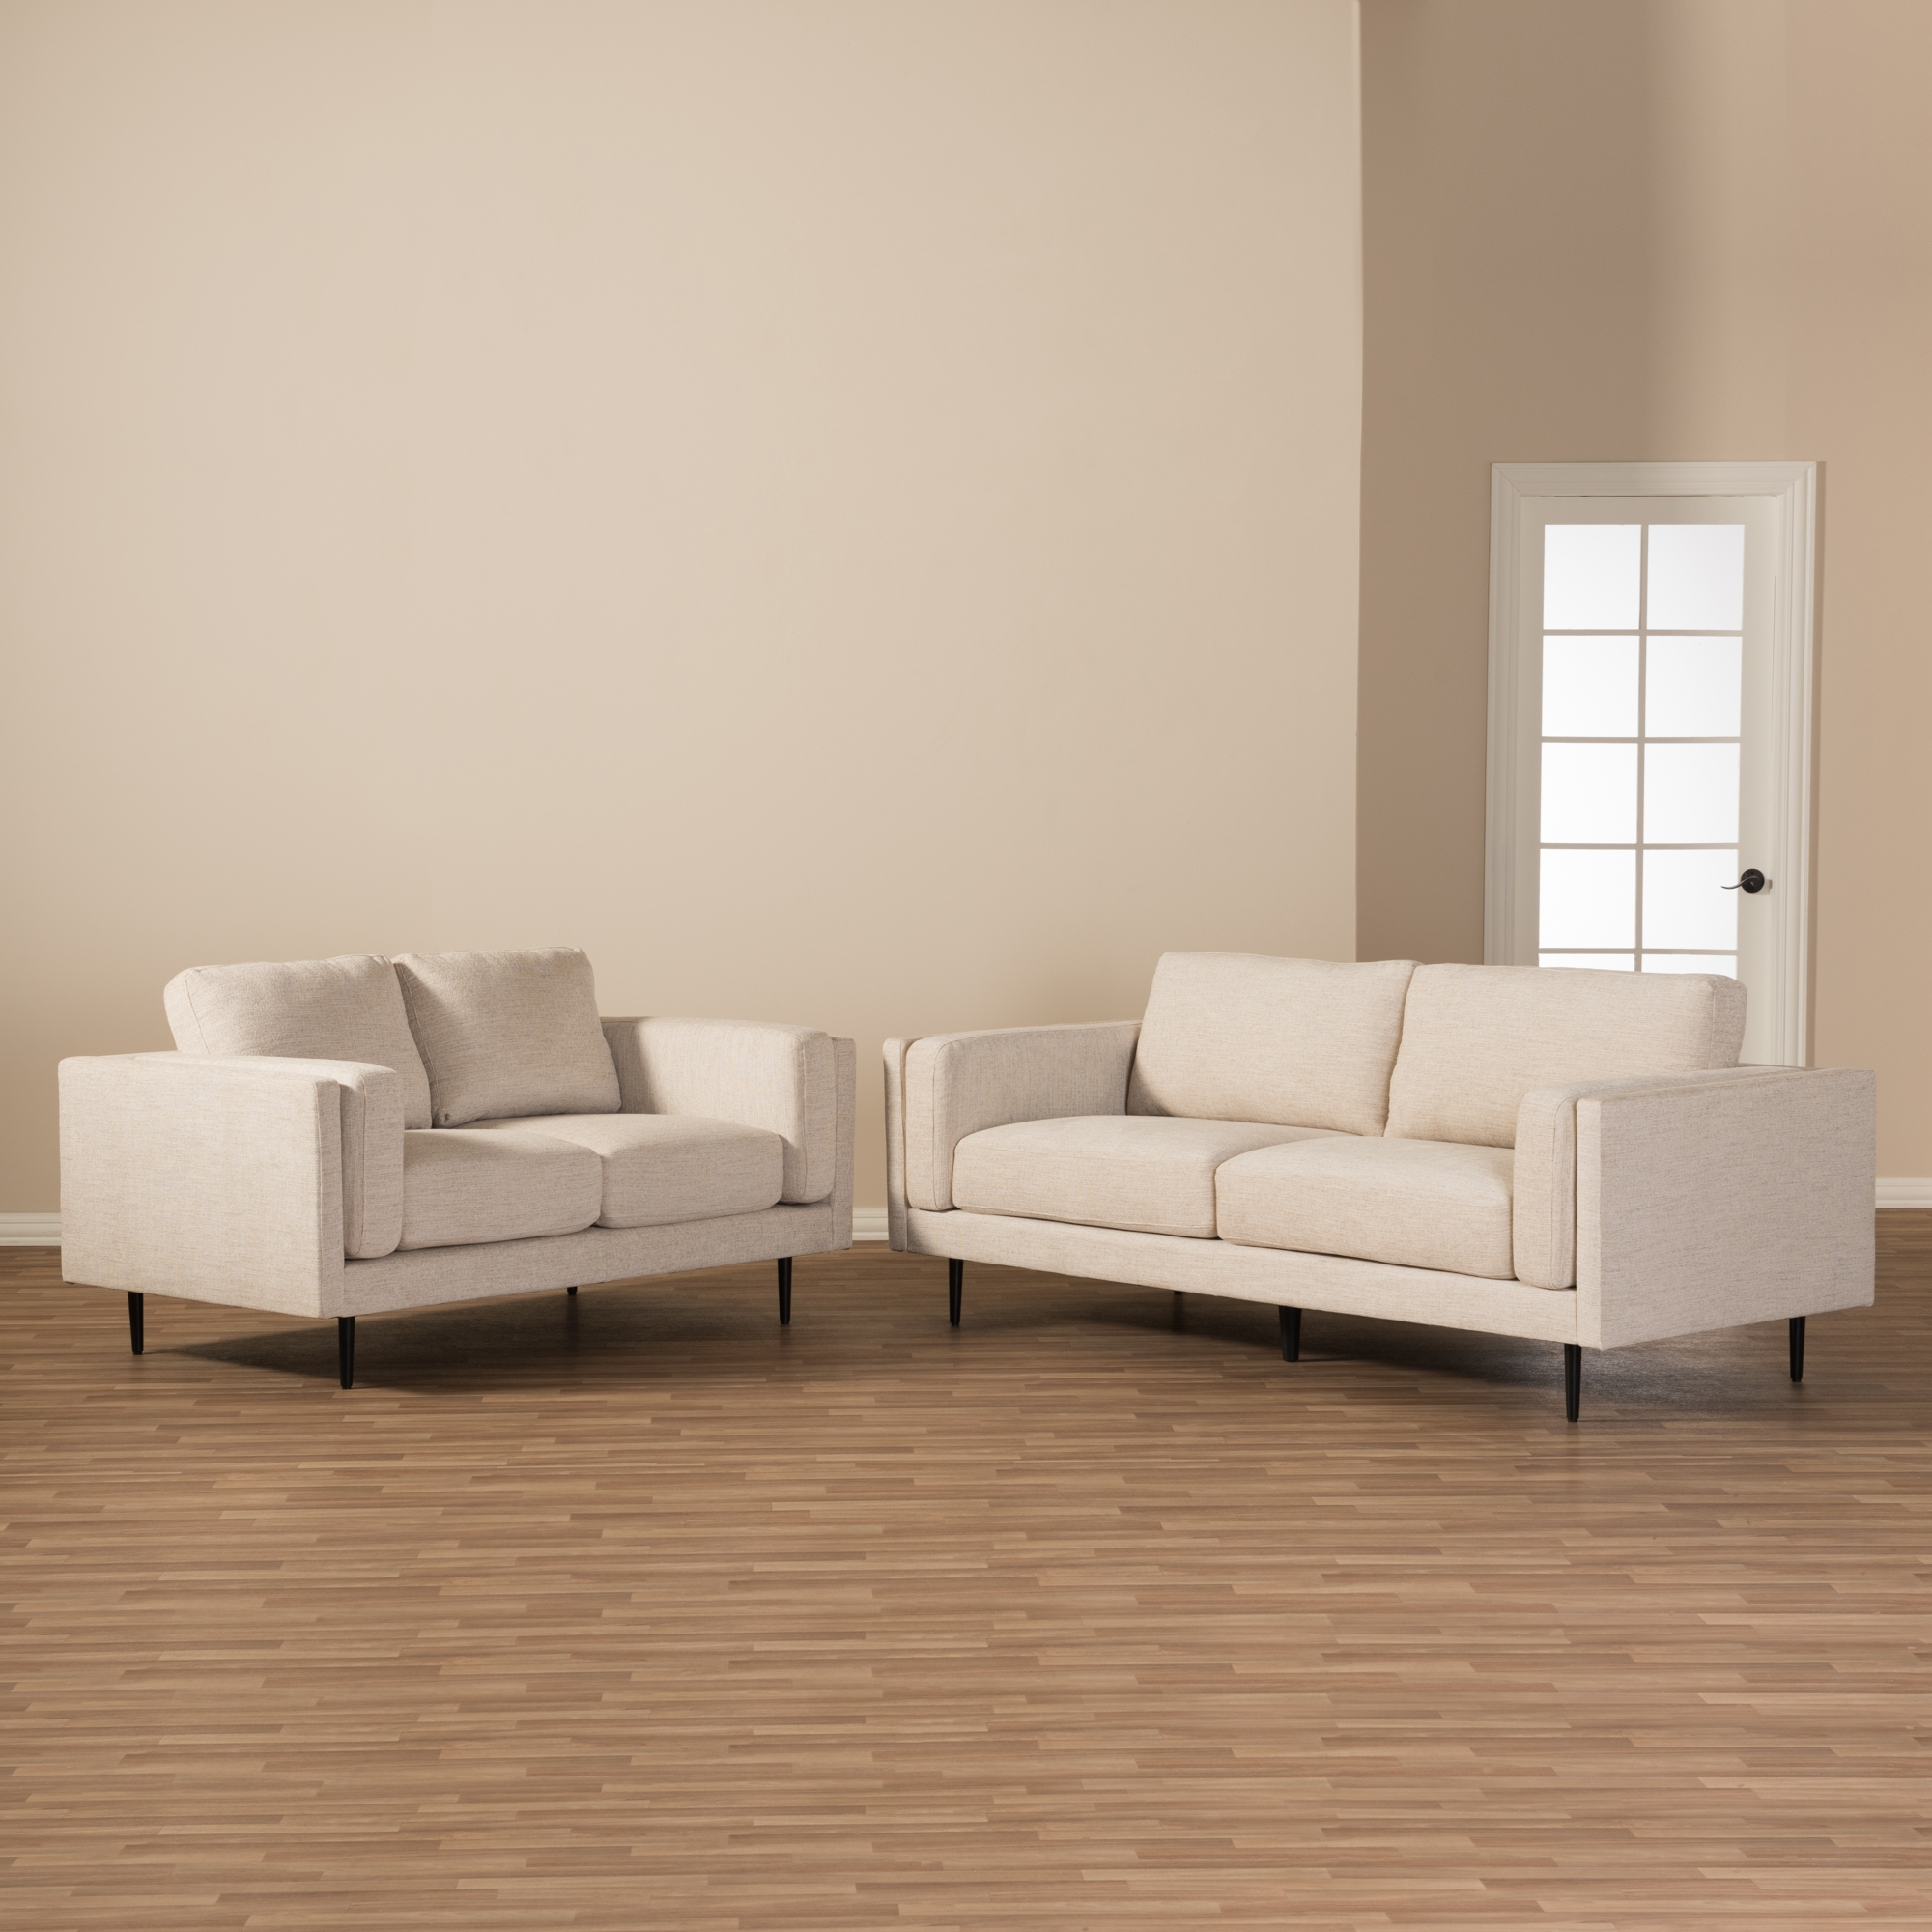 ... Baxton Studio Brittany Retro Mid Century Modern Light Beige Fabric  Upholstered 2 Piece Living